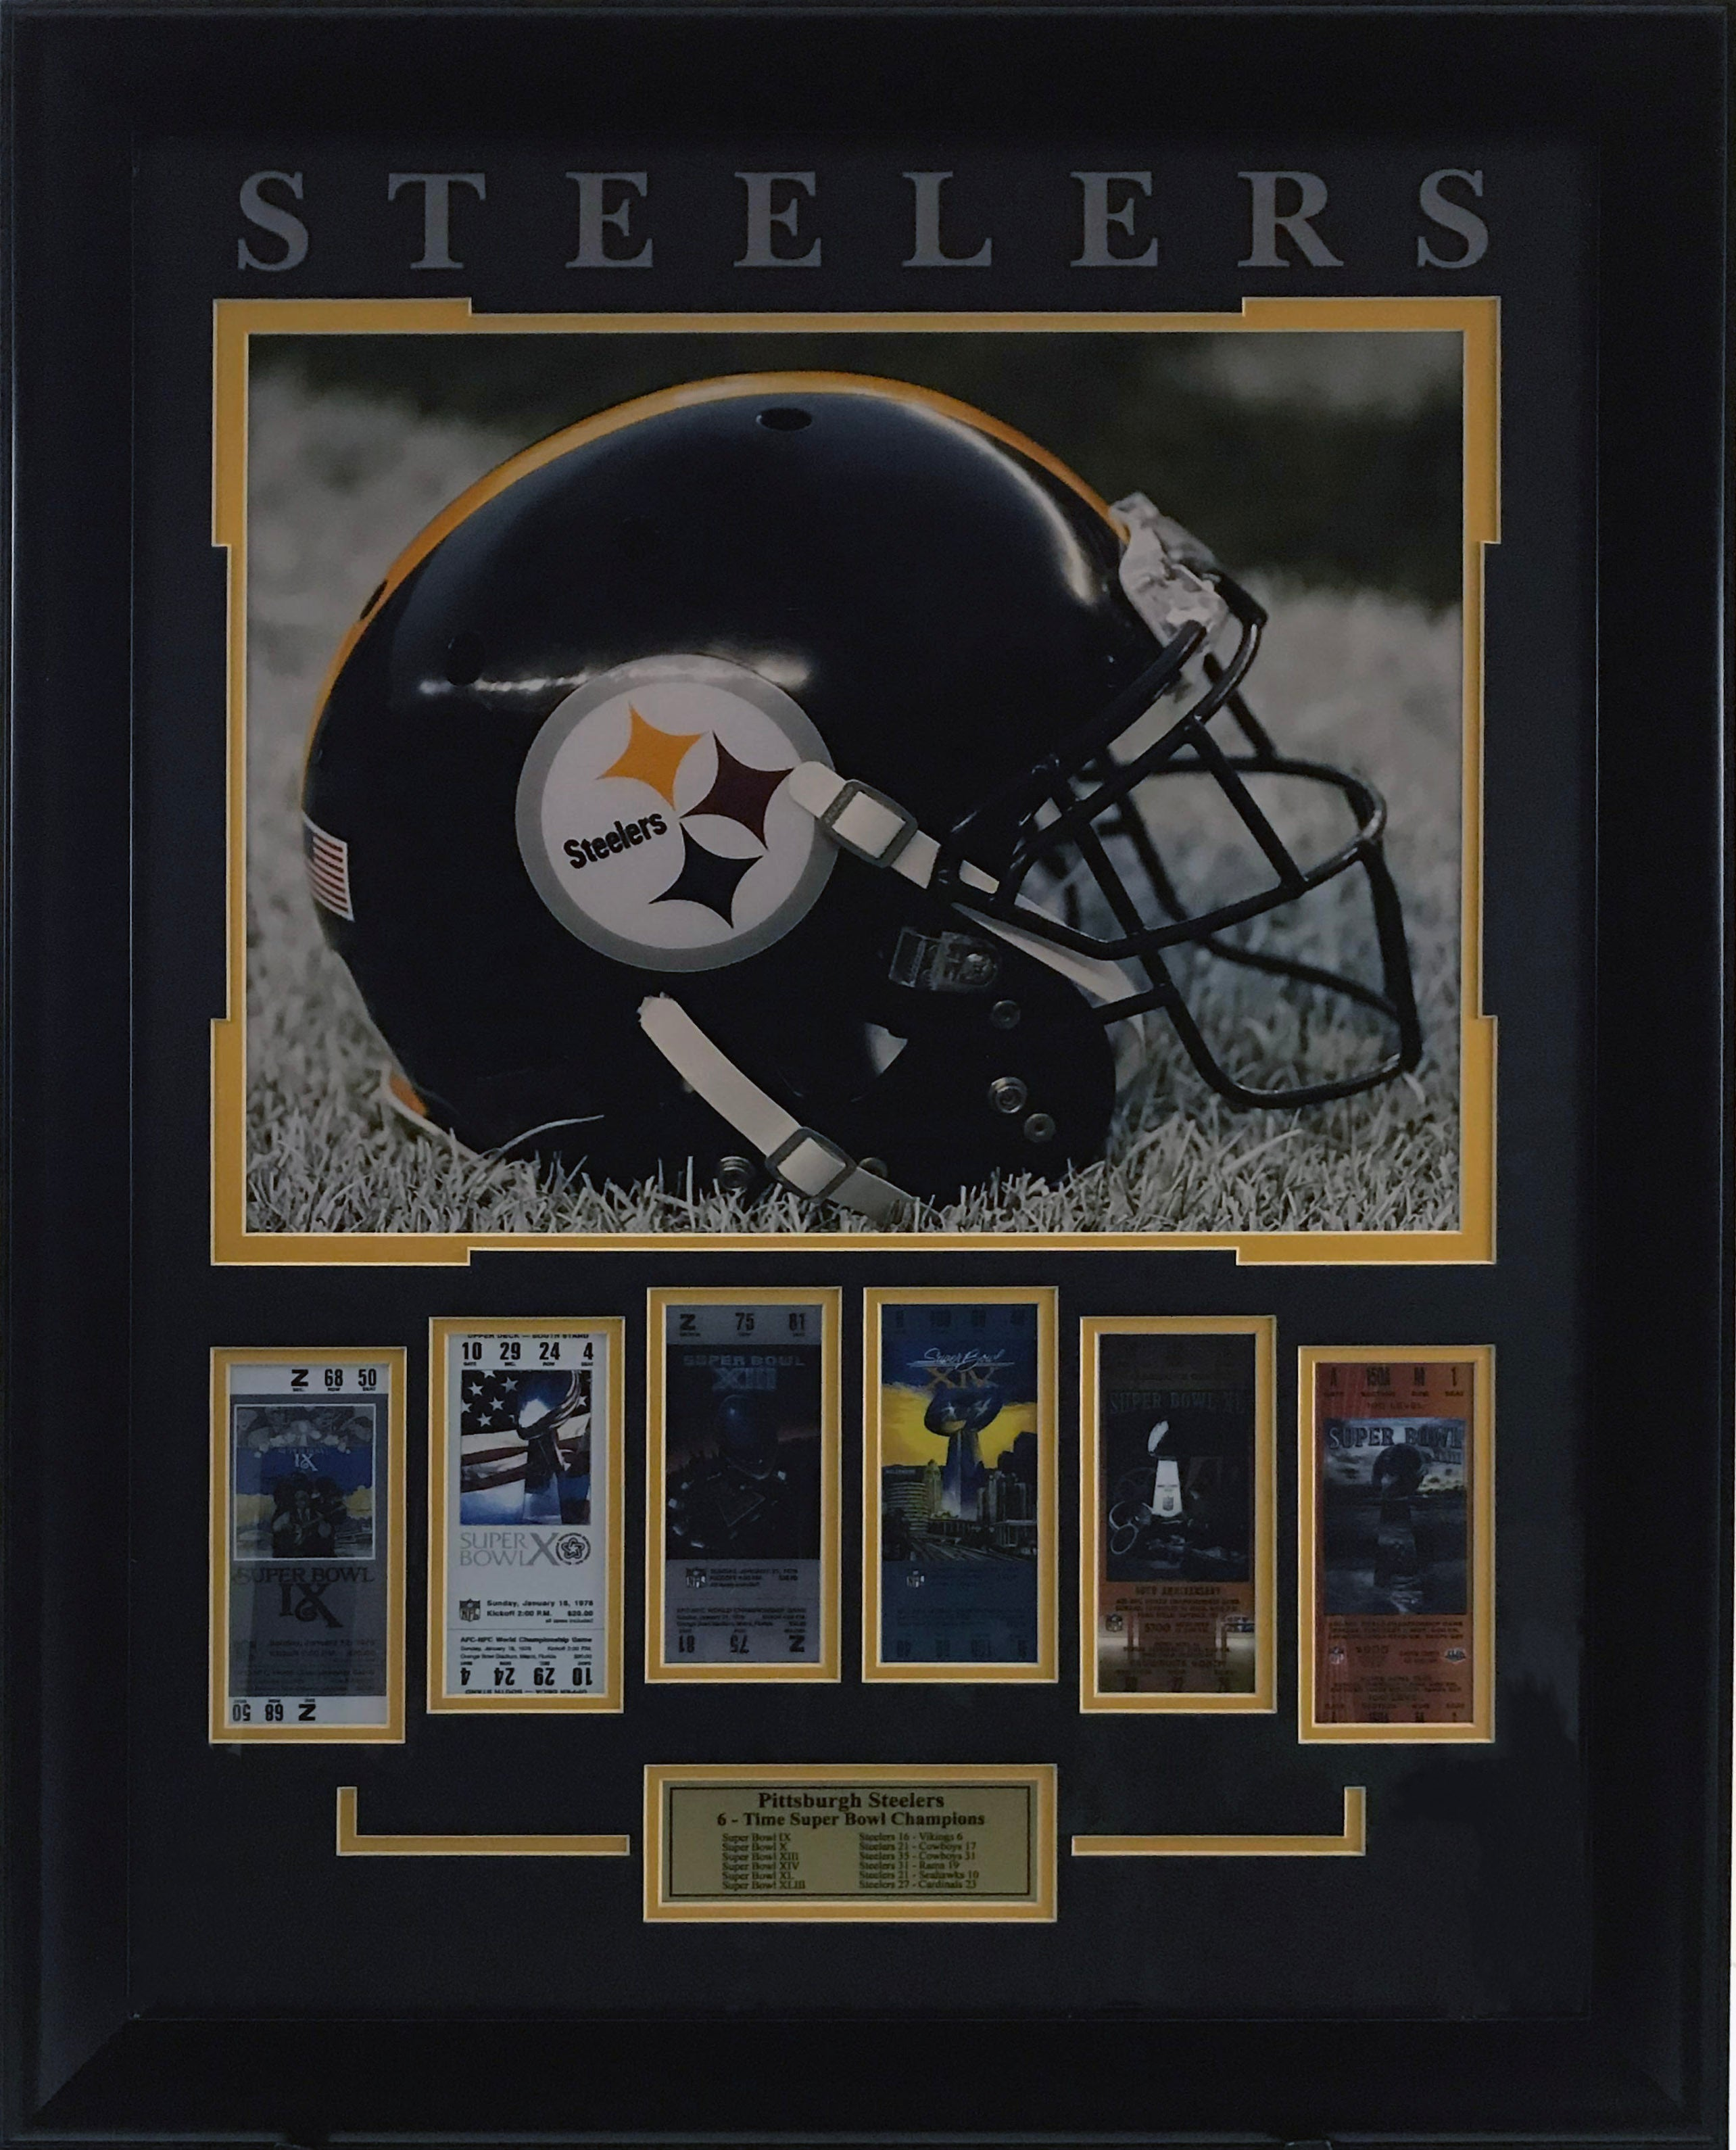 bf9aca35f Pittsburgh Steelers Framed 16x20 Photo with Replica Tickets ...